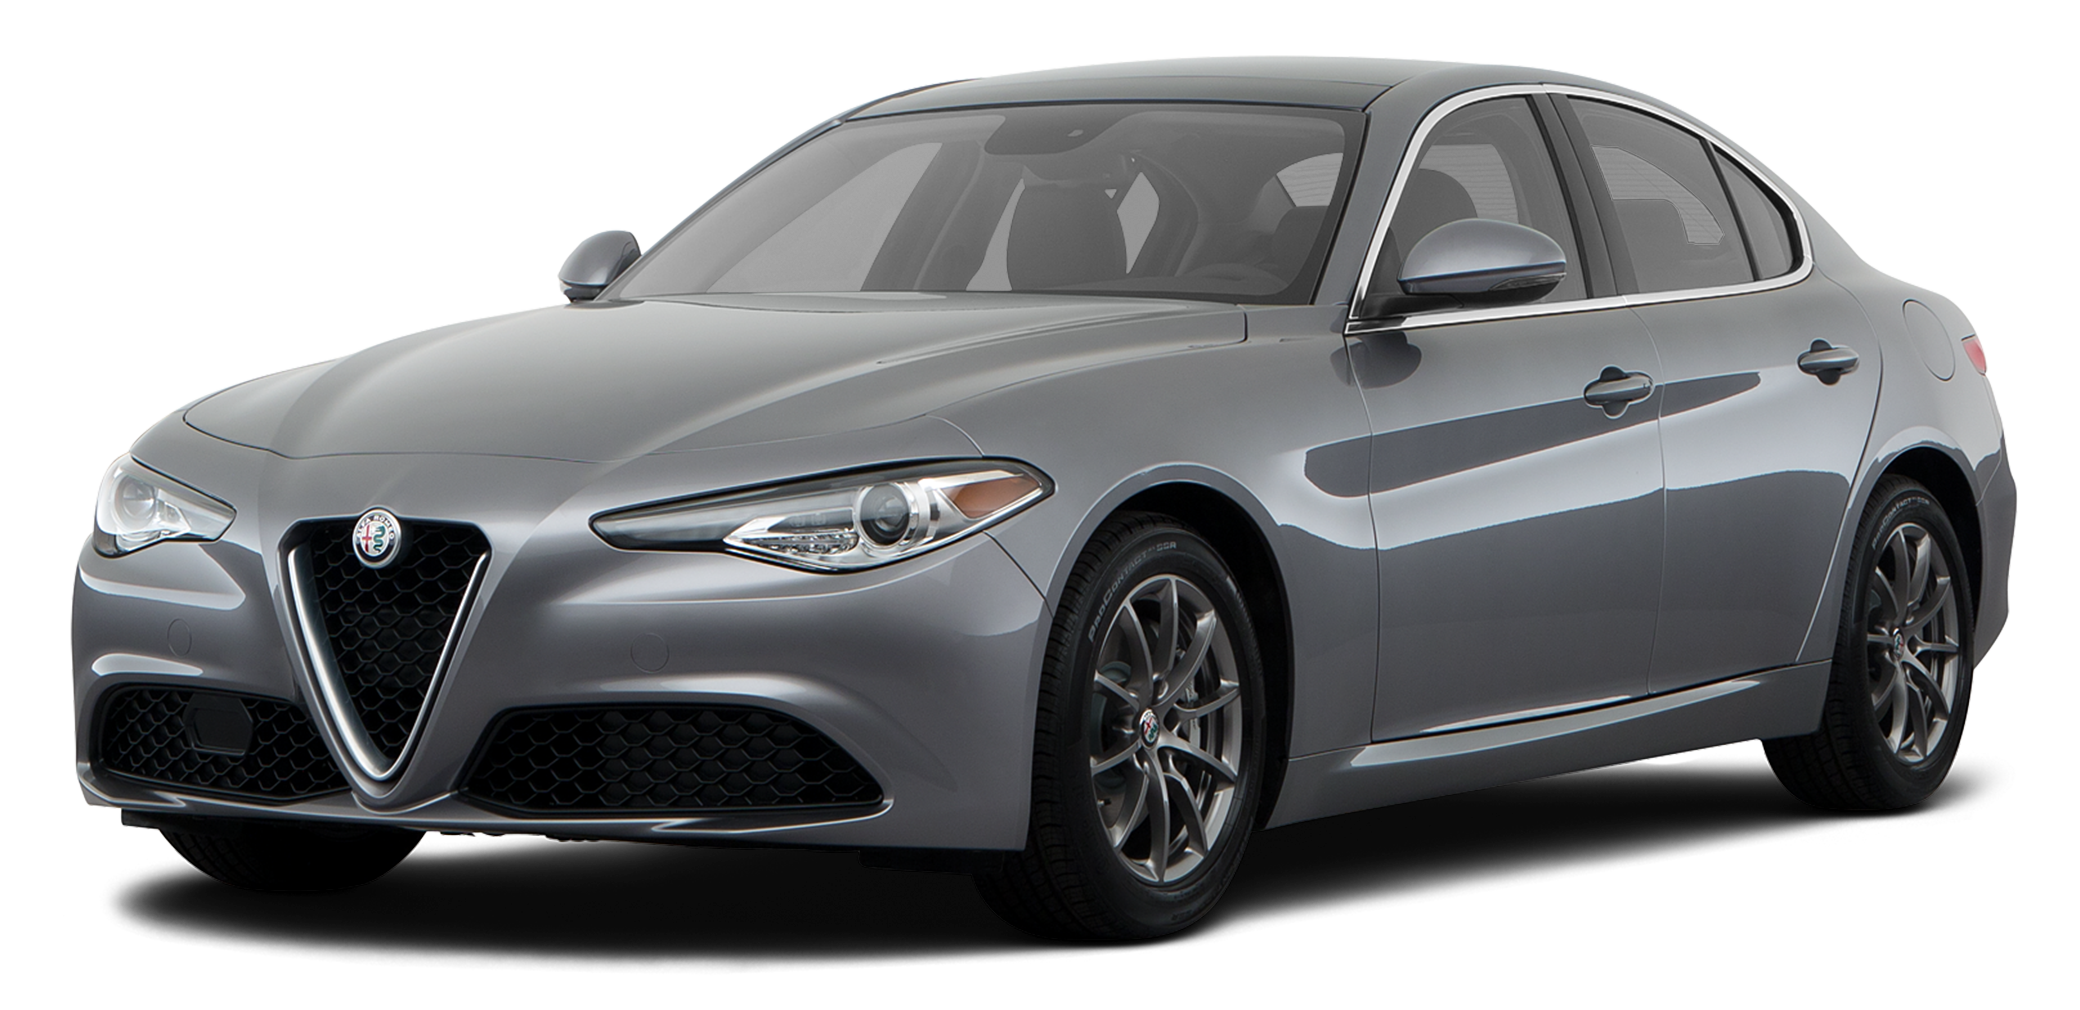 Alfa Romeo White Plains Lease Specials Image